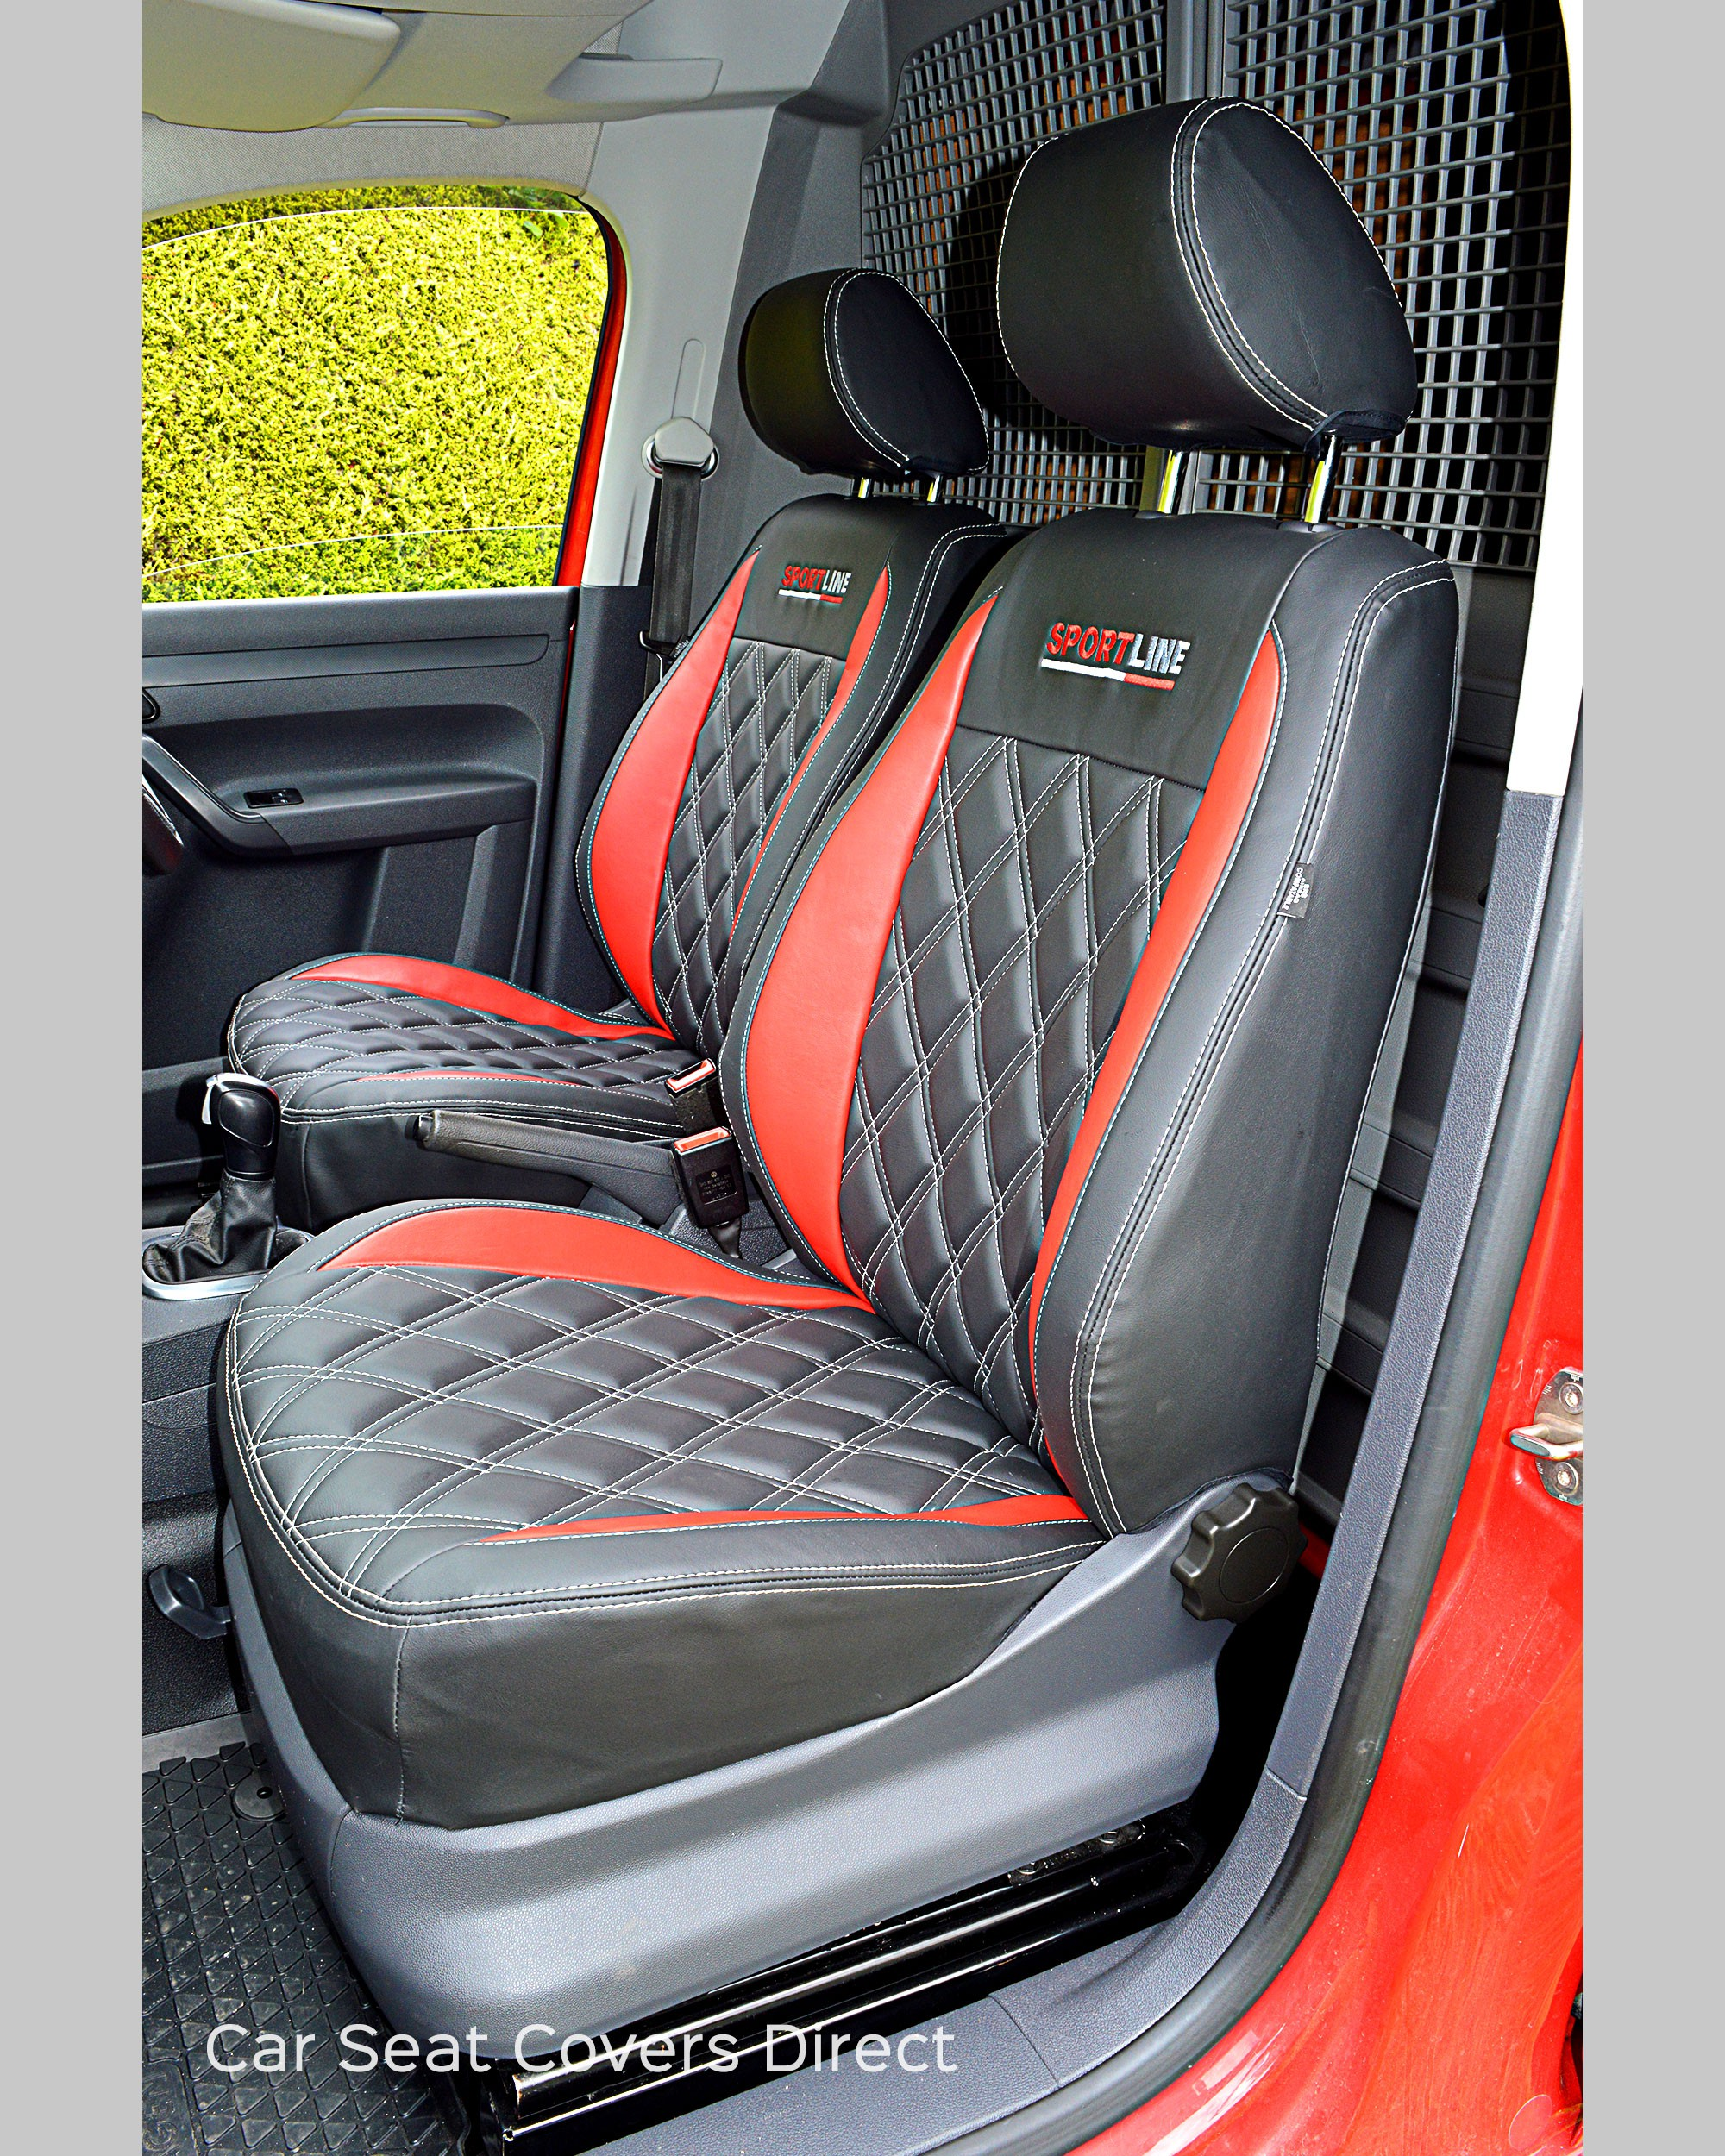 Volkswagen Vw Caddy Tailored Seat Covers Car Seat Covers